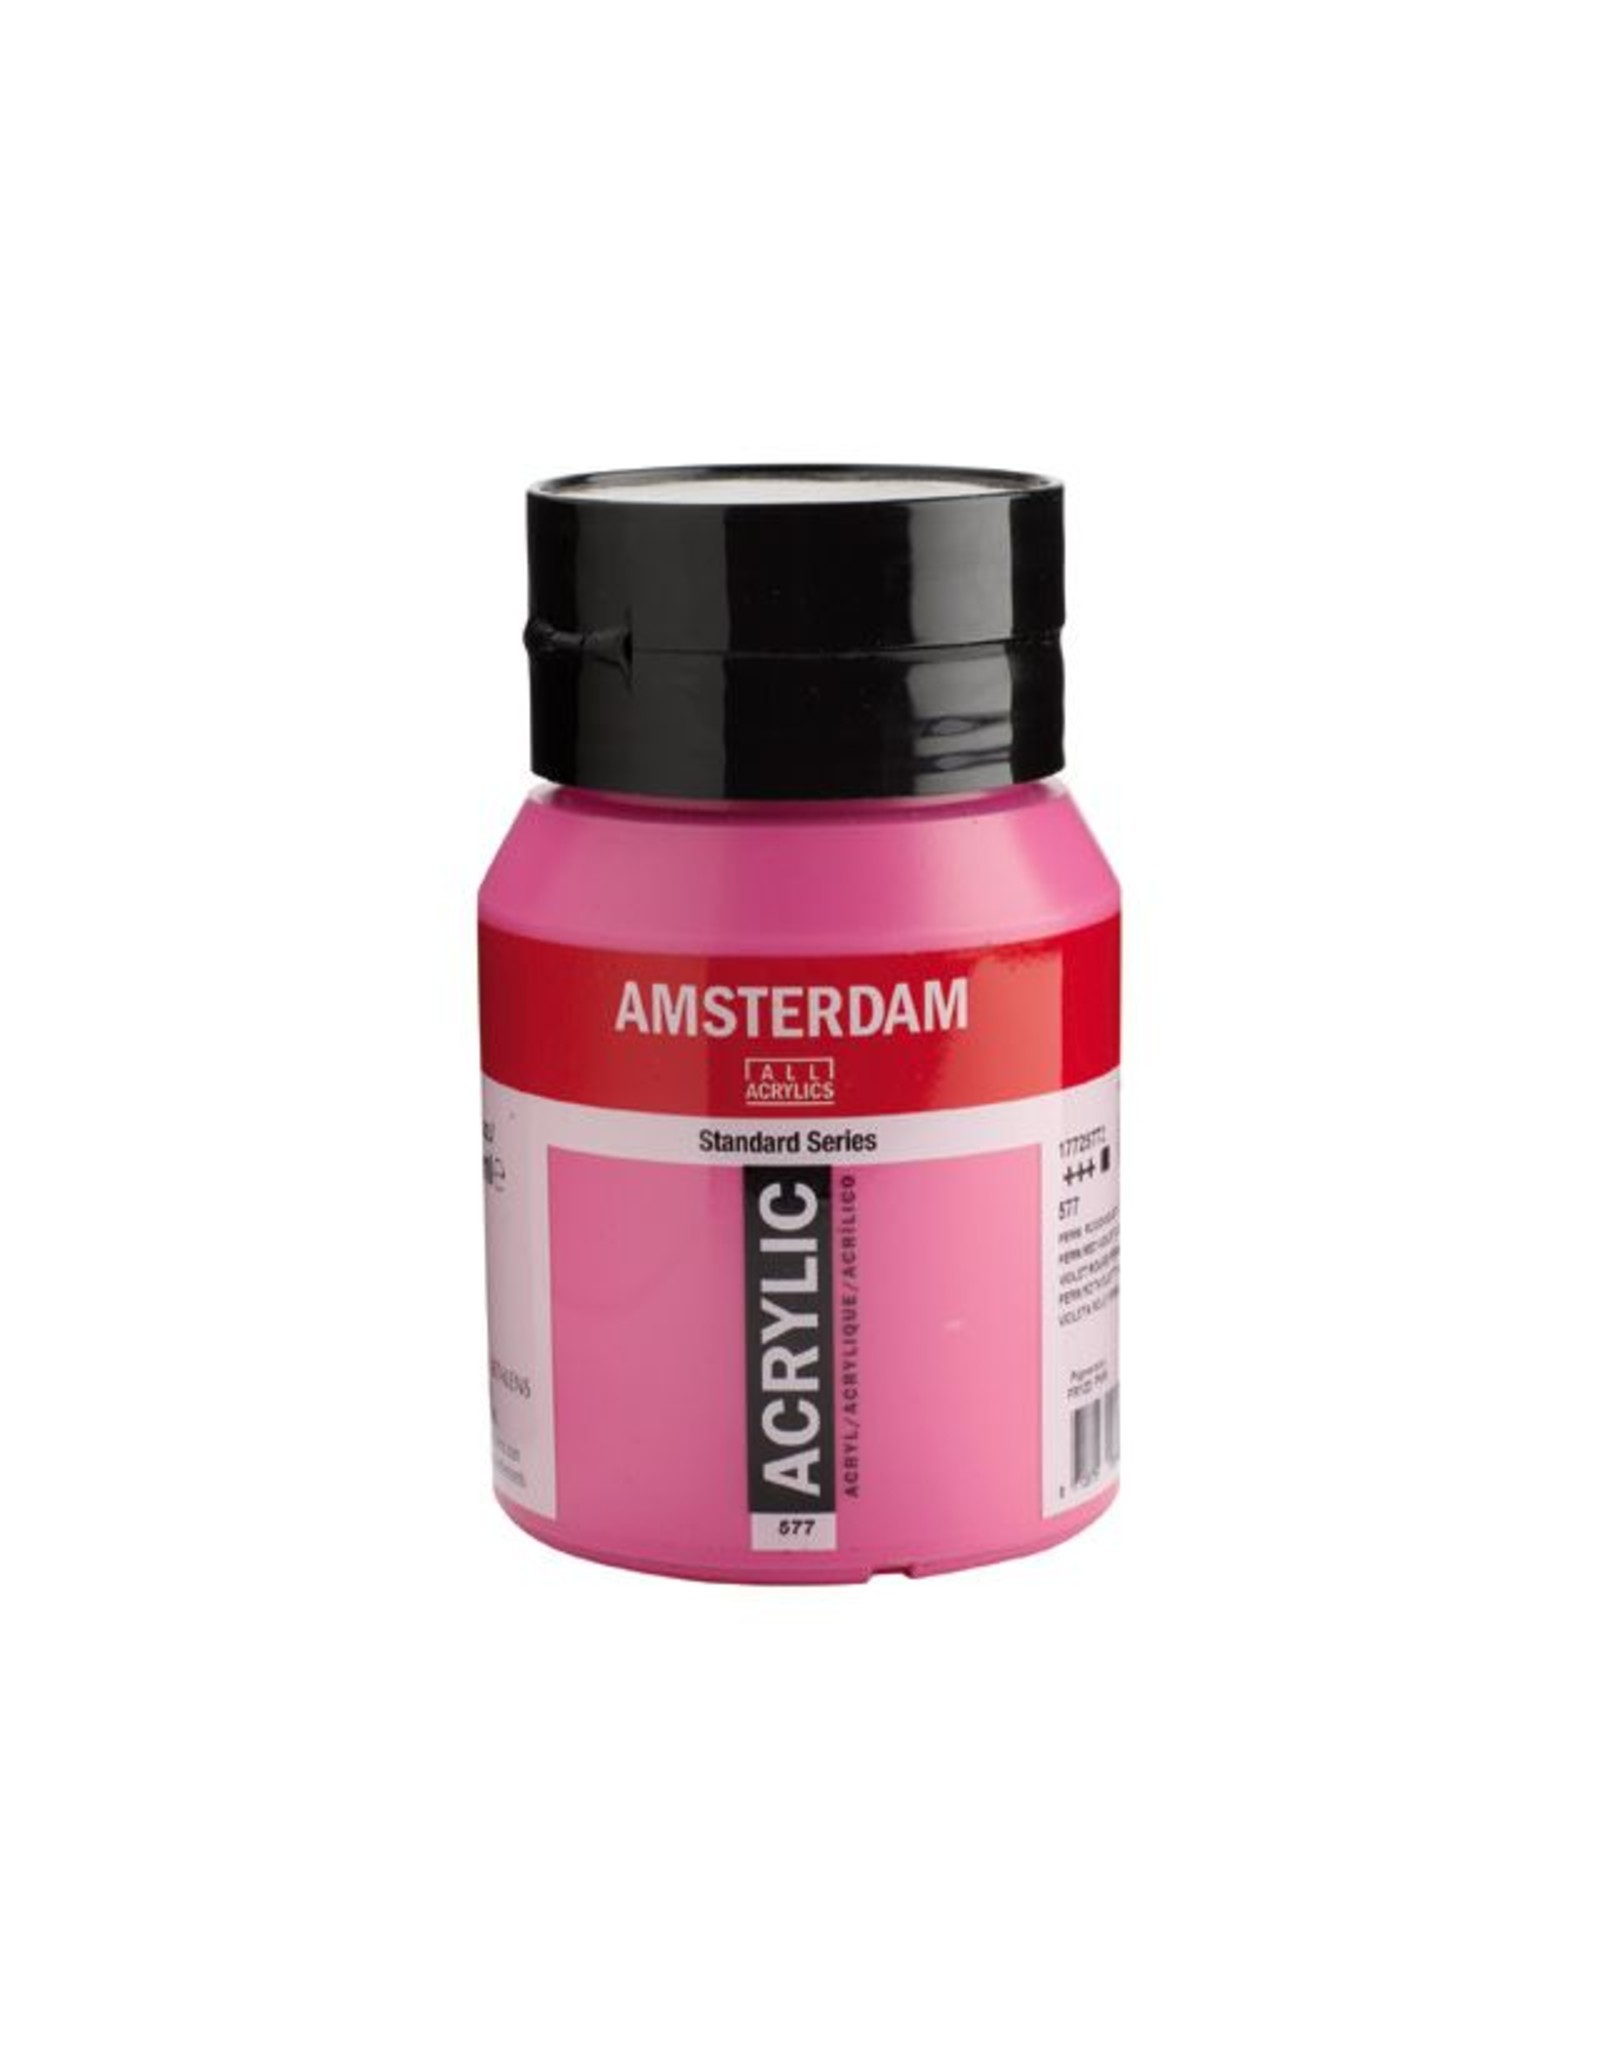 Talens Amsterdam acrylverf Perm. rood violet licht 500ML